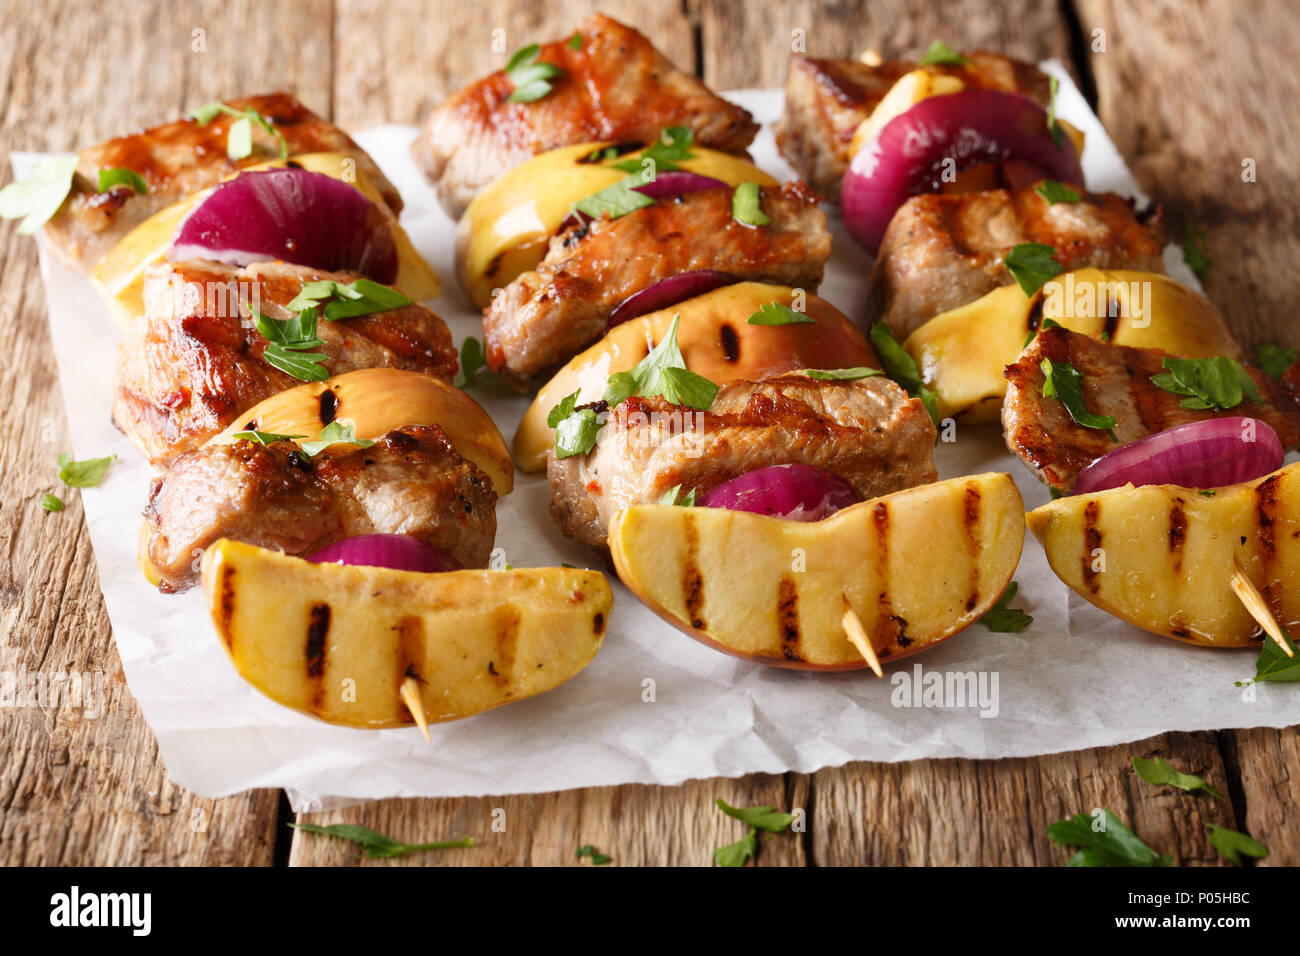 Rustic juicy kebabs of pork with apples and red onions close-up on parchment on the table. horizontal - Stock Image